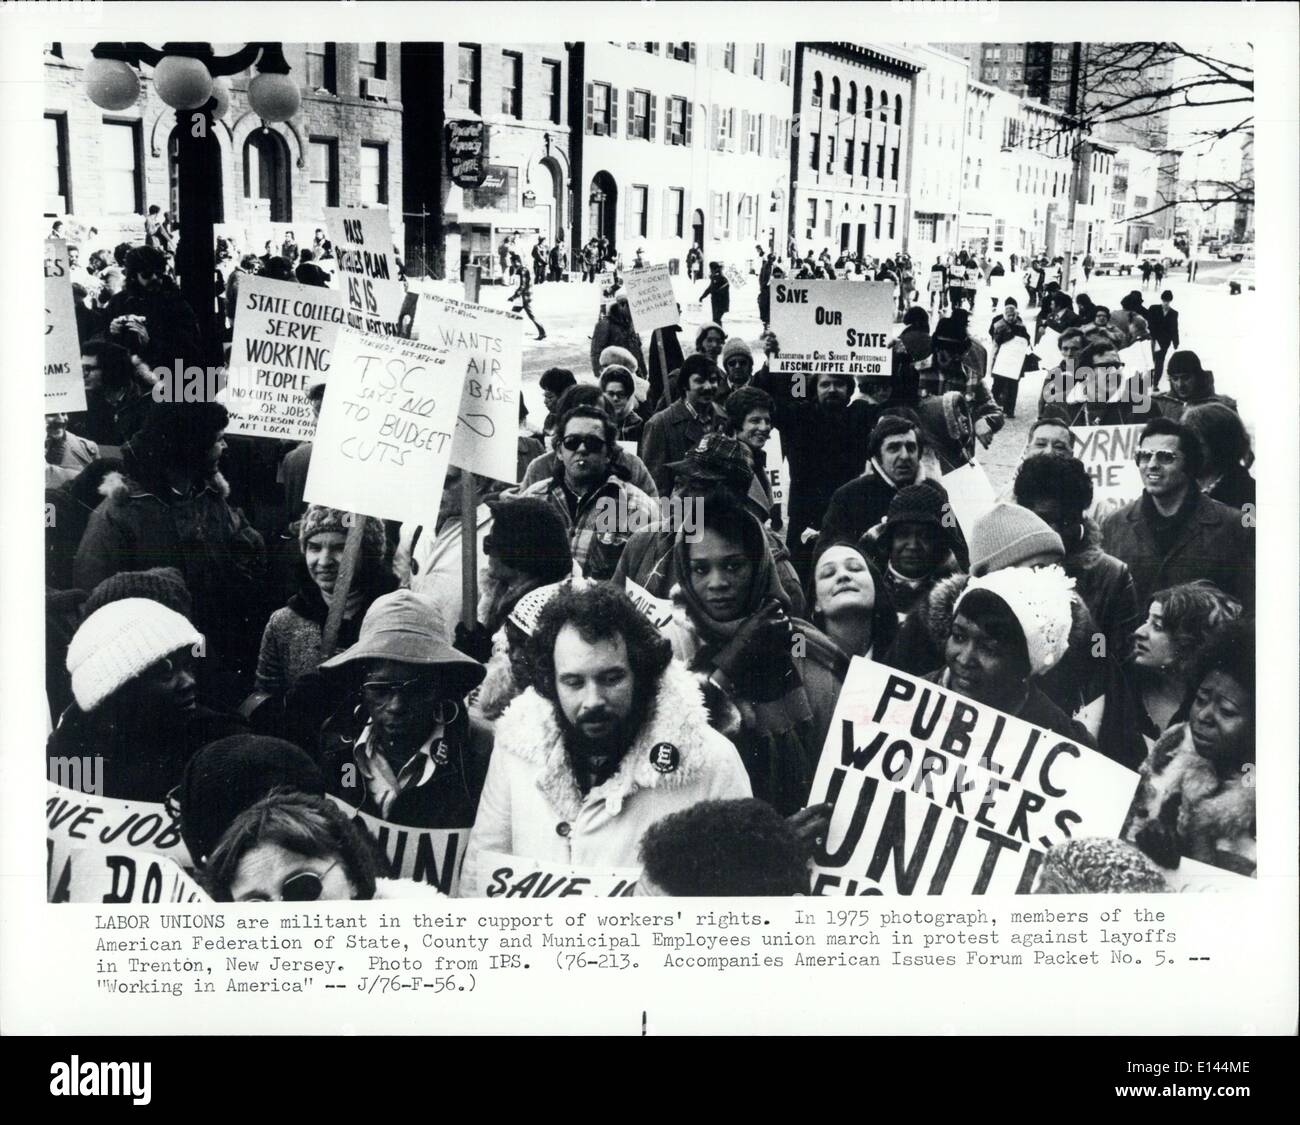 Apr. 04, 2012 - Labor Unions are militant in their support of workers rights. In 1975 photograph, members of the American Federation of State, County and Municipal Employees union march in protest against layoffs in Trenton, New Jersey. - Stock Image